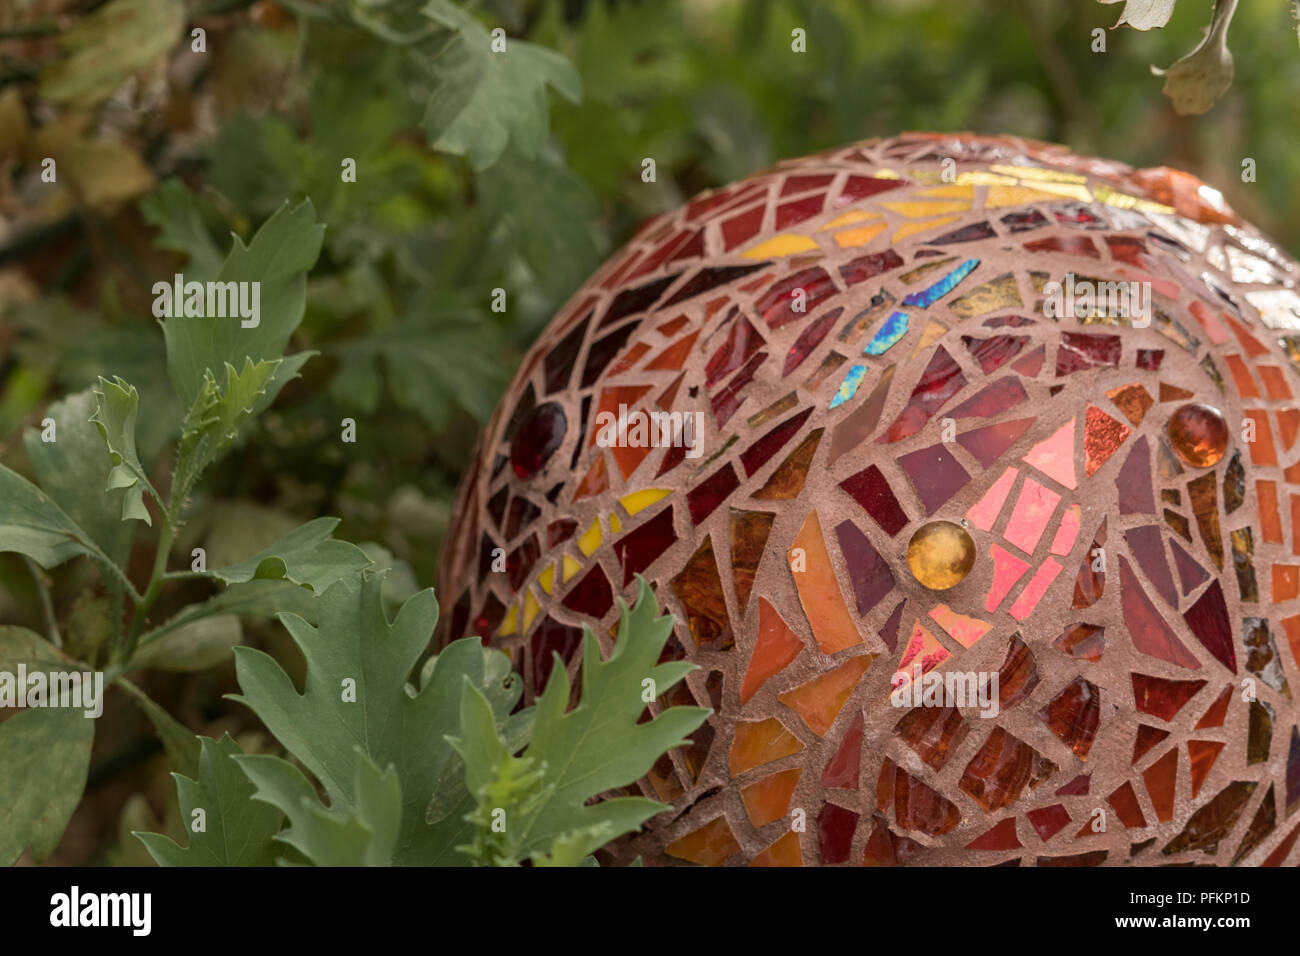 Stained Glass Garden Art Stock Photos & Stained Glass Garden Art ...